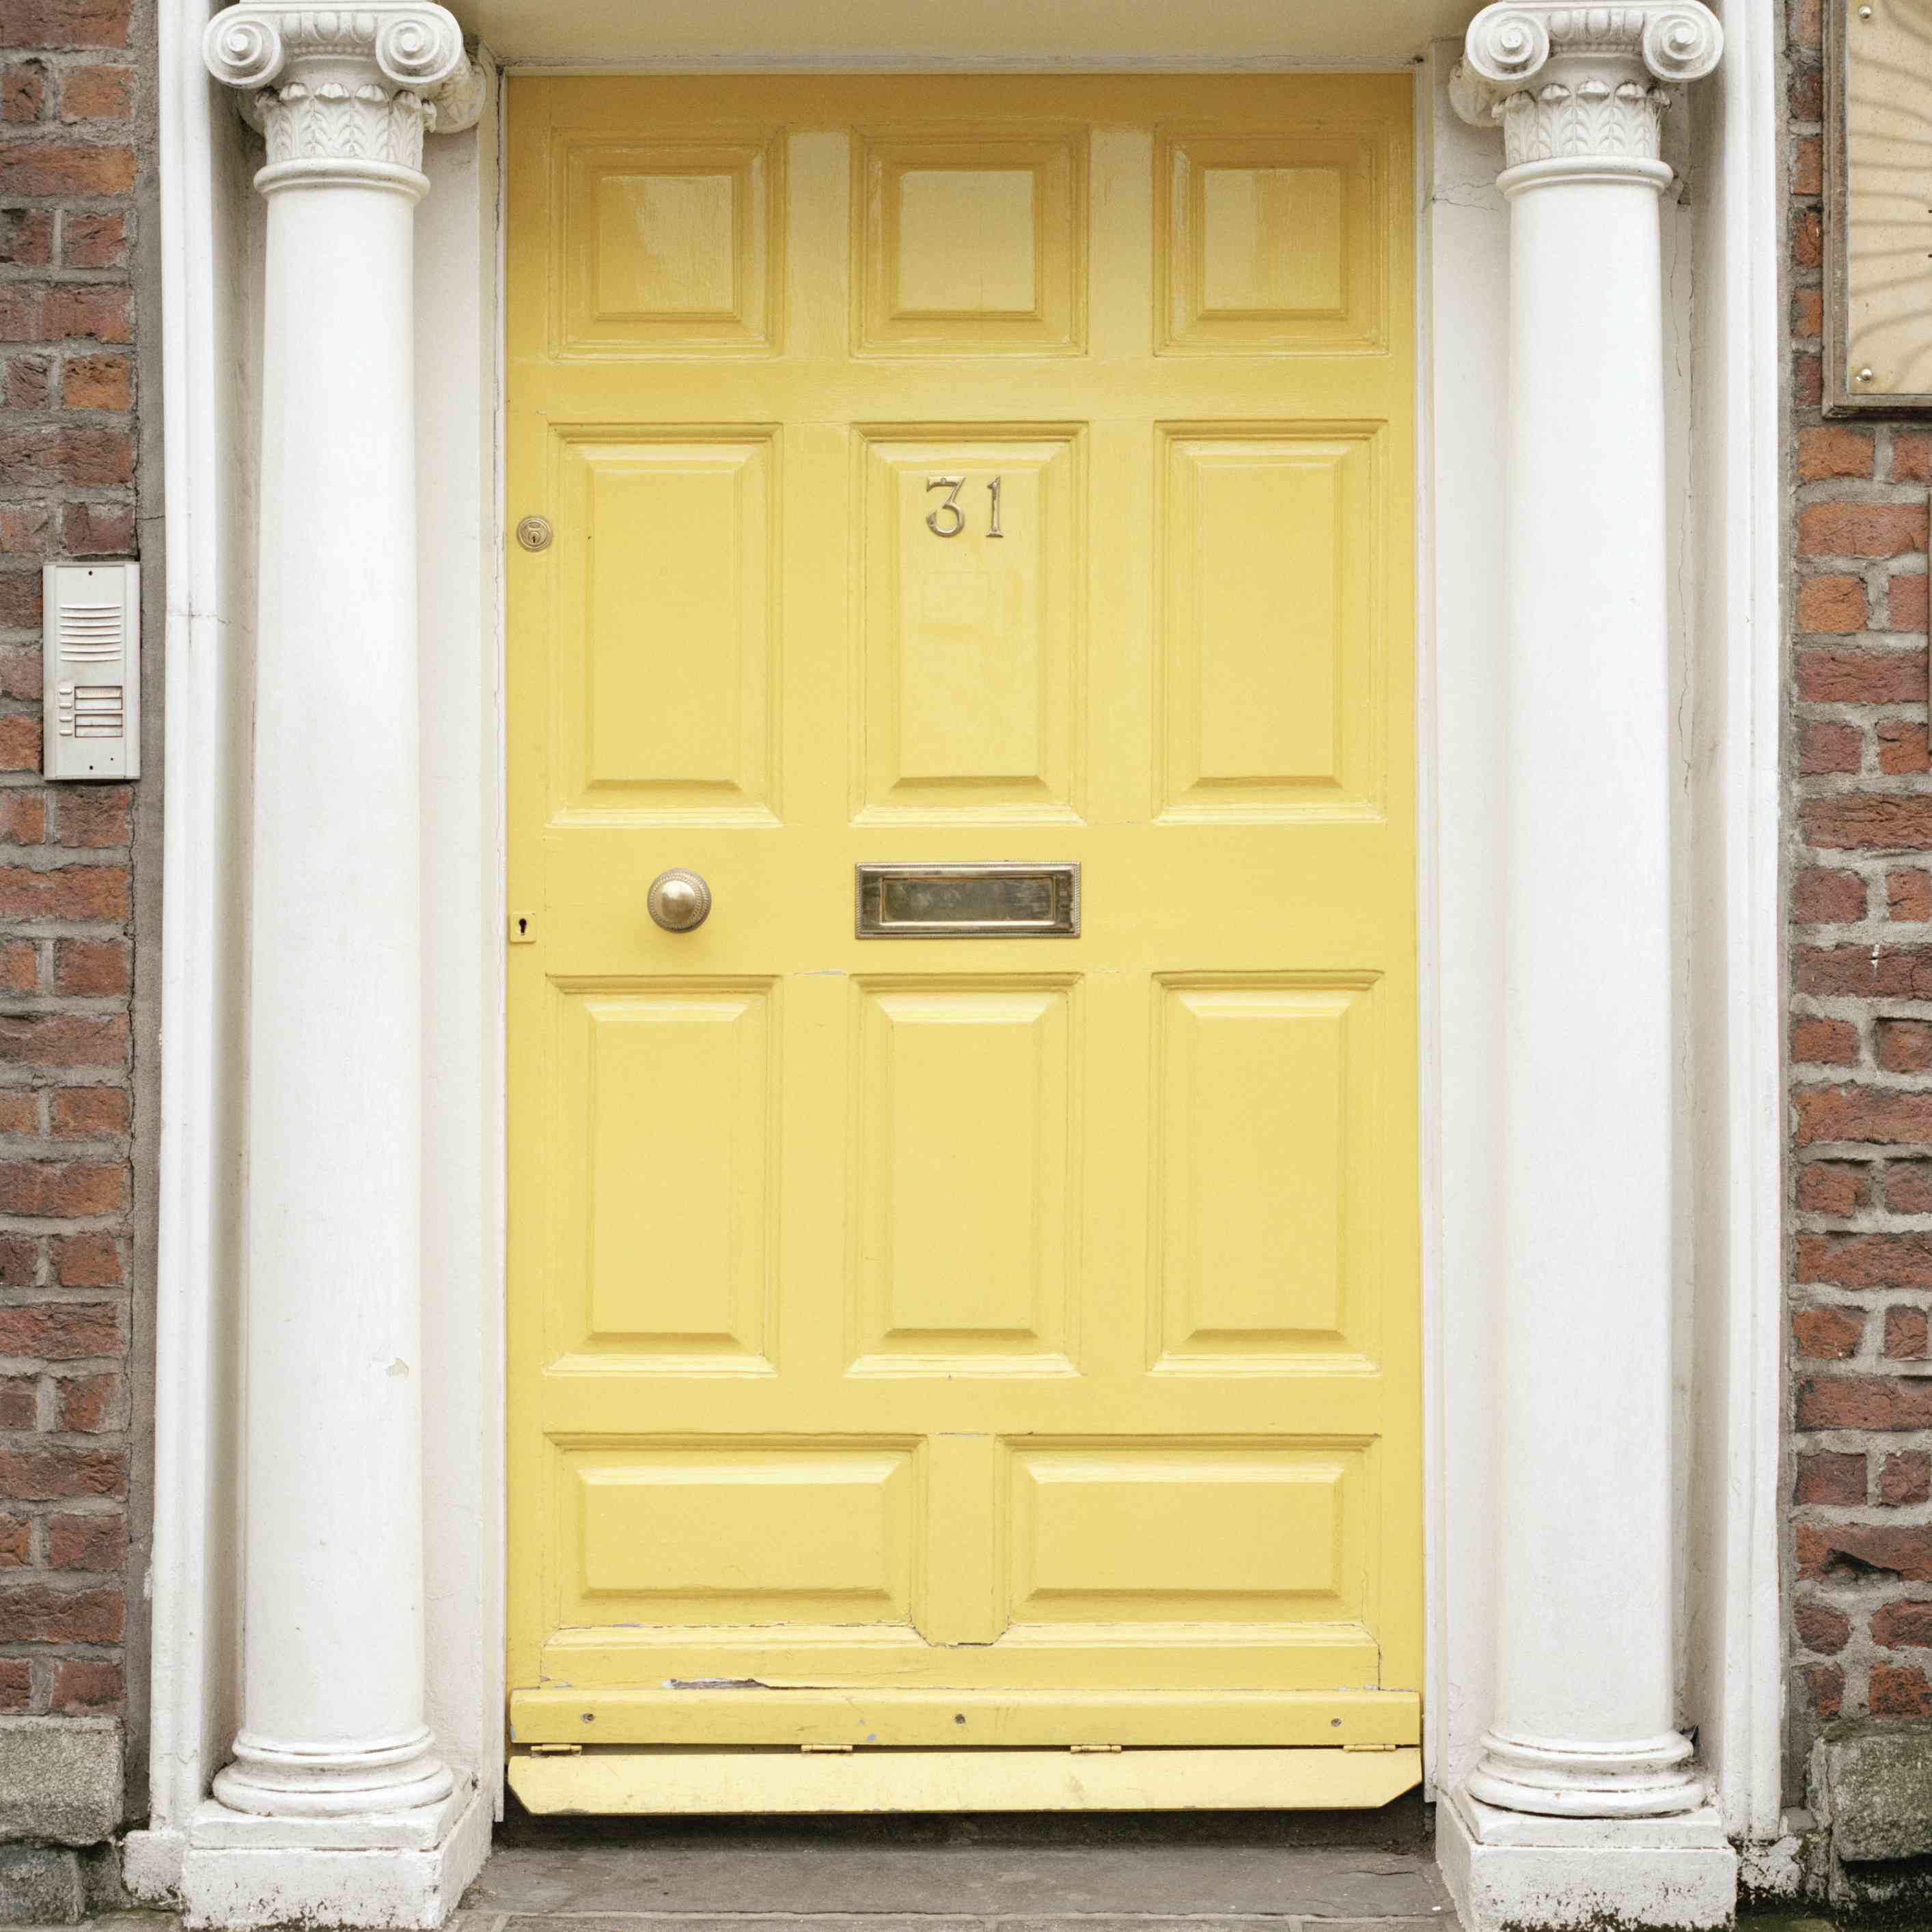 A yellow door in a home with neoclassical columns